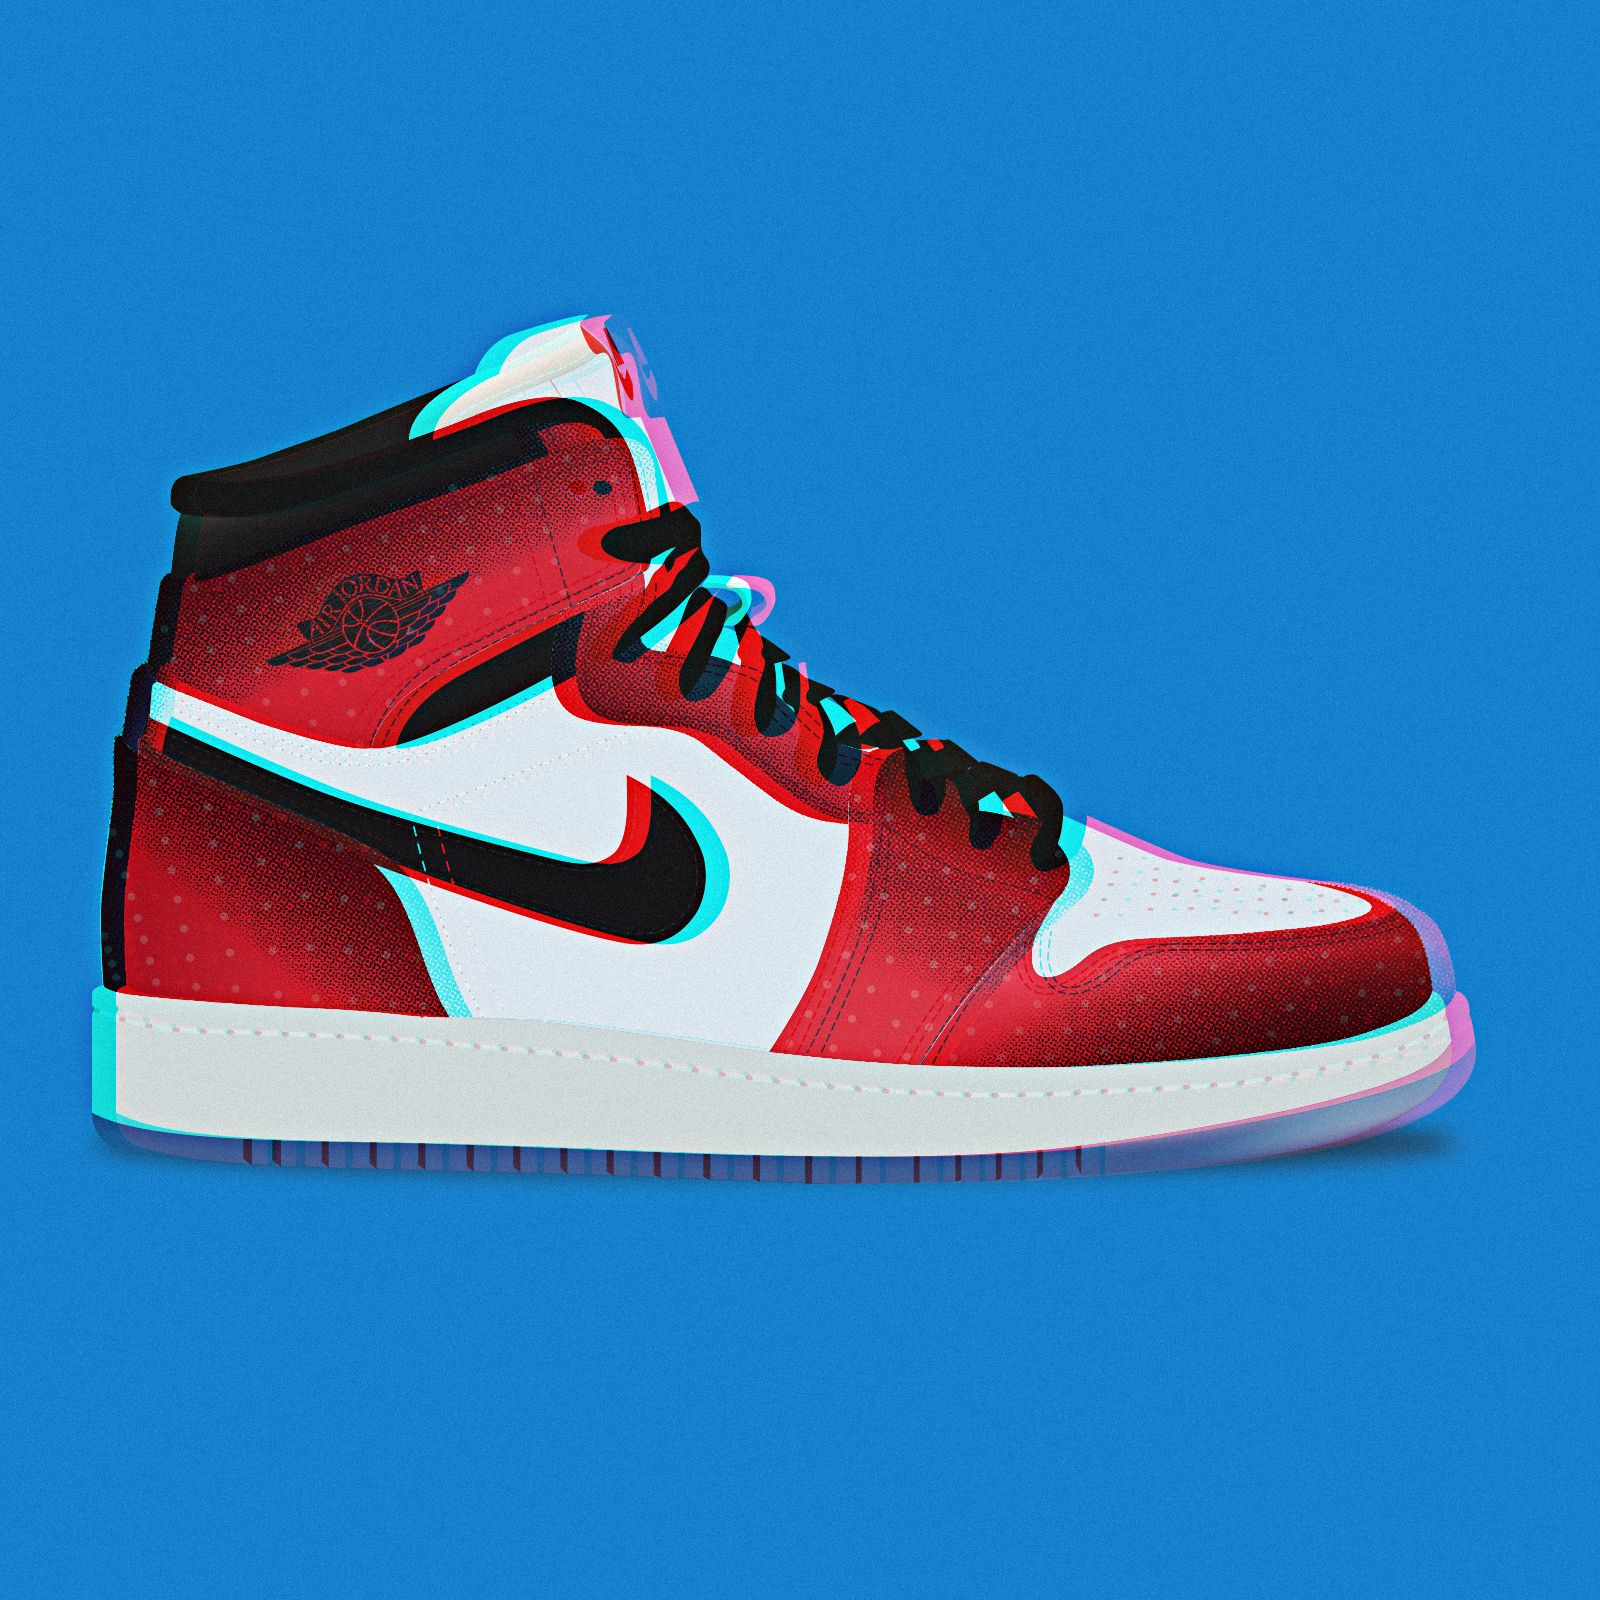 sports shoes 9103e 814d8 Jordan Brand is celebrating the release of Spider-Man: Into ...